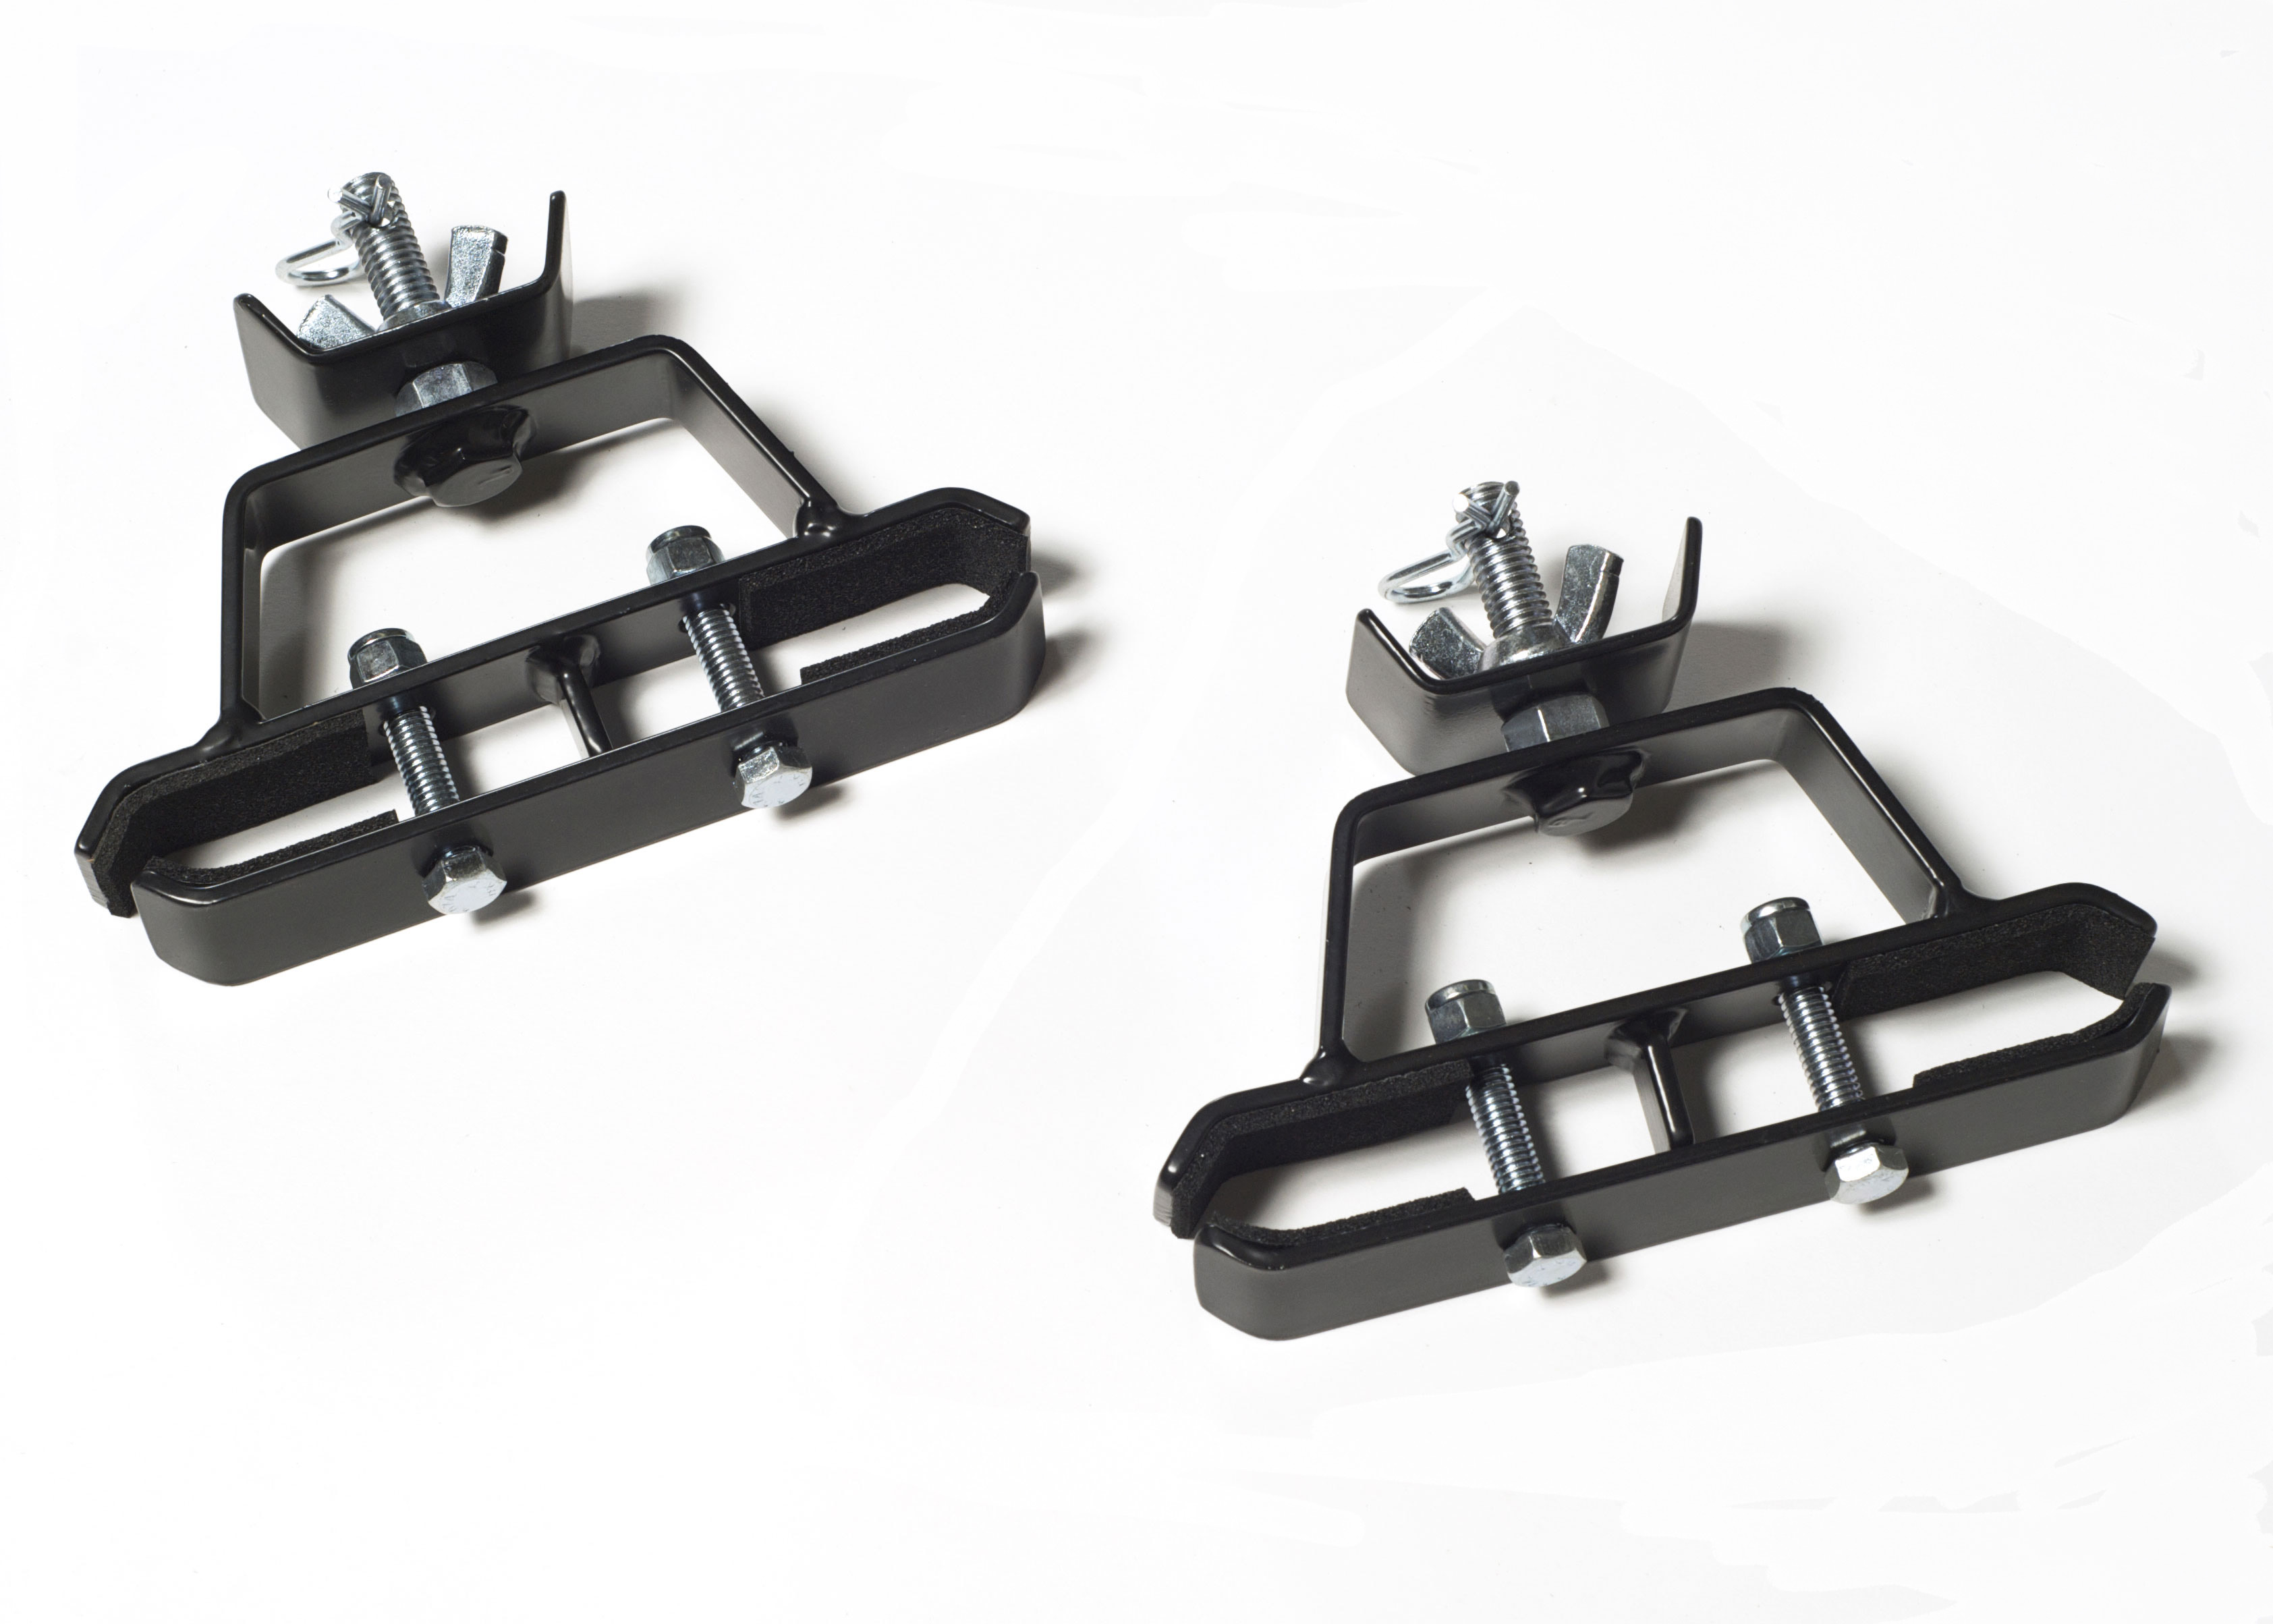 "Baja Rack Hi-Lift mount for 5"" tall racks."